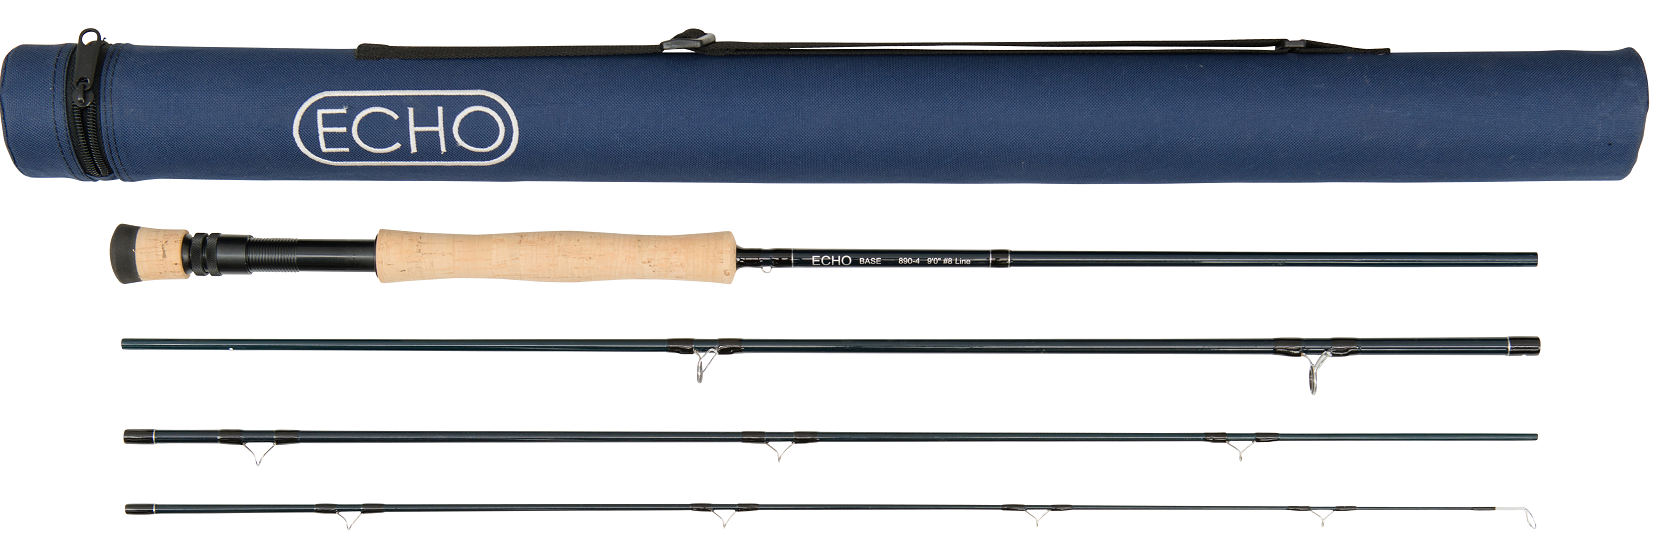 SHIPPING ECHO ION XL 990-4 9/' FOOT #9 WEIGHT 4 PIECE FLY ROD TUBE FREE U.S